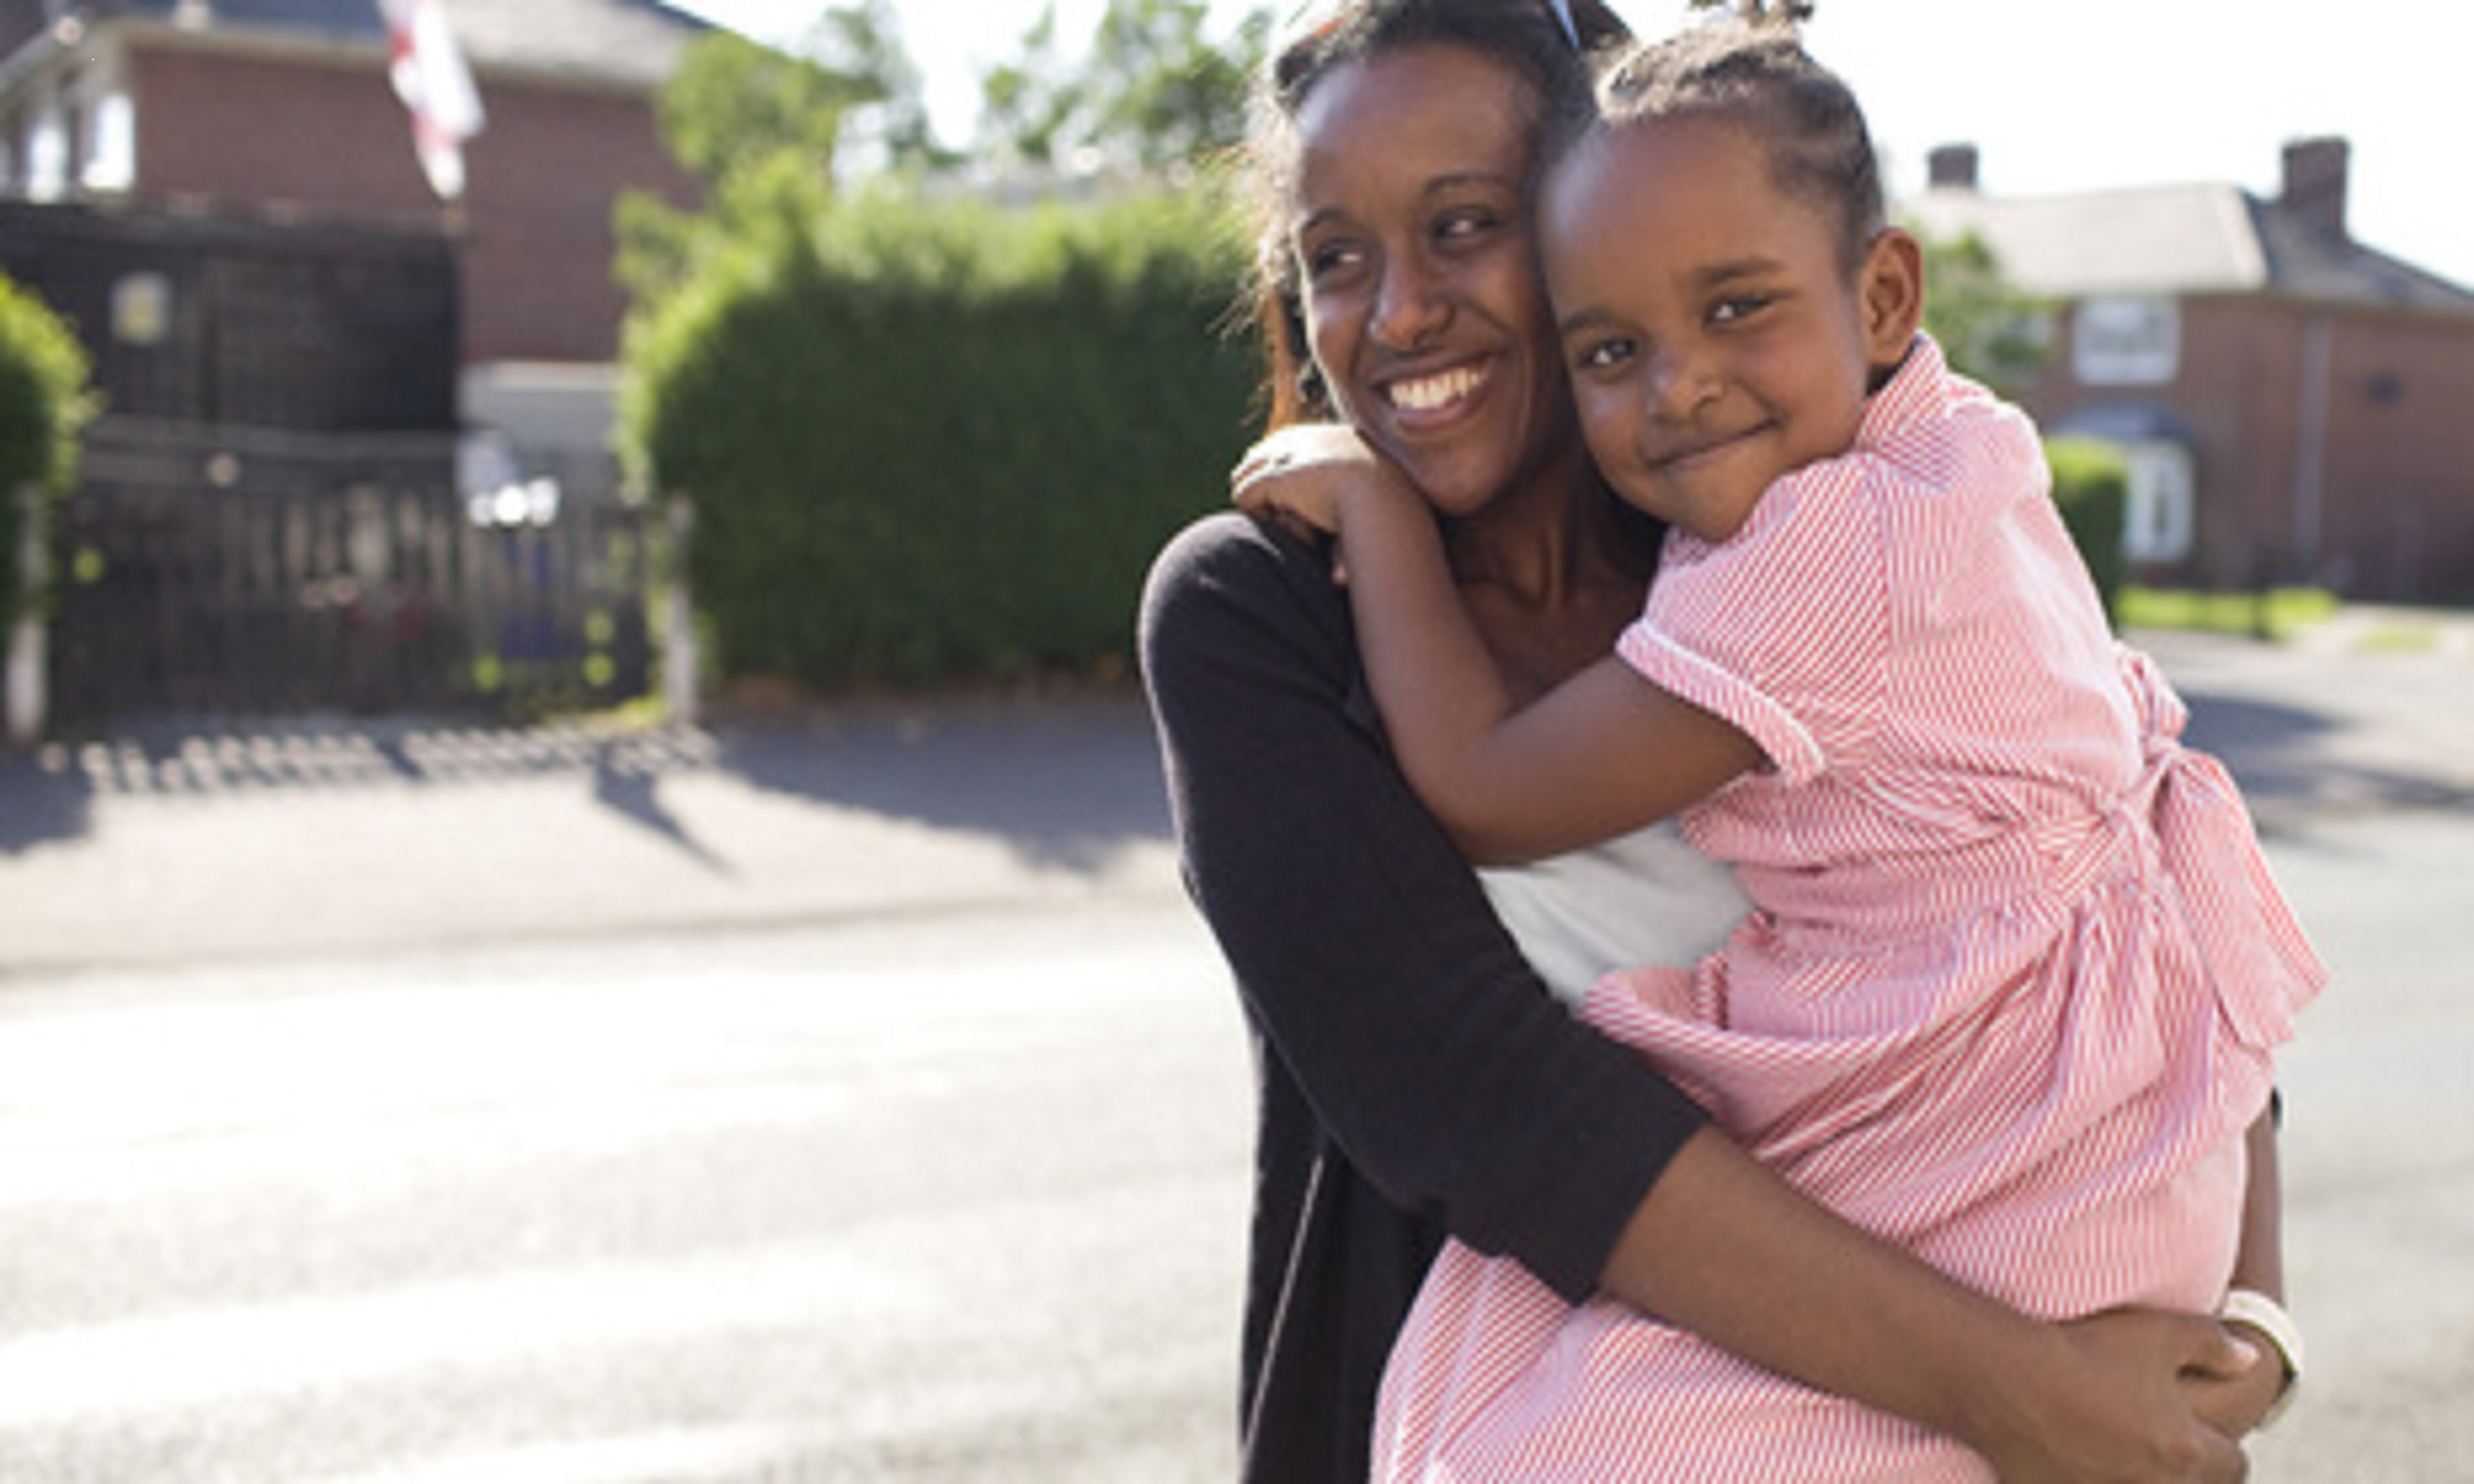 Photo of Sisay, a refugee from Eritrea, with a young girl in her arms